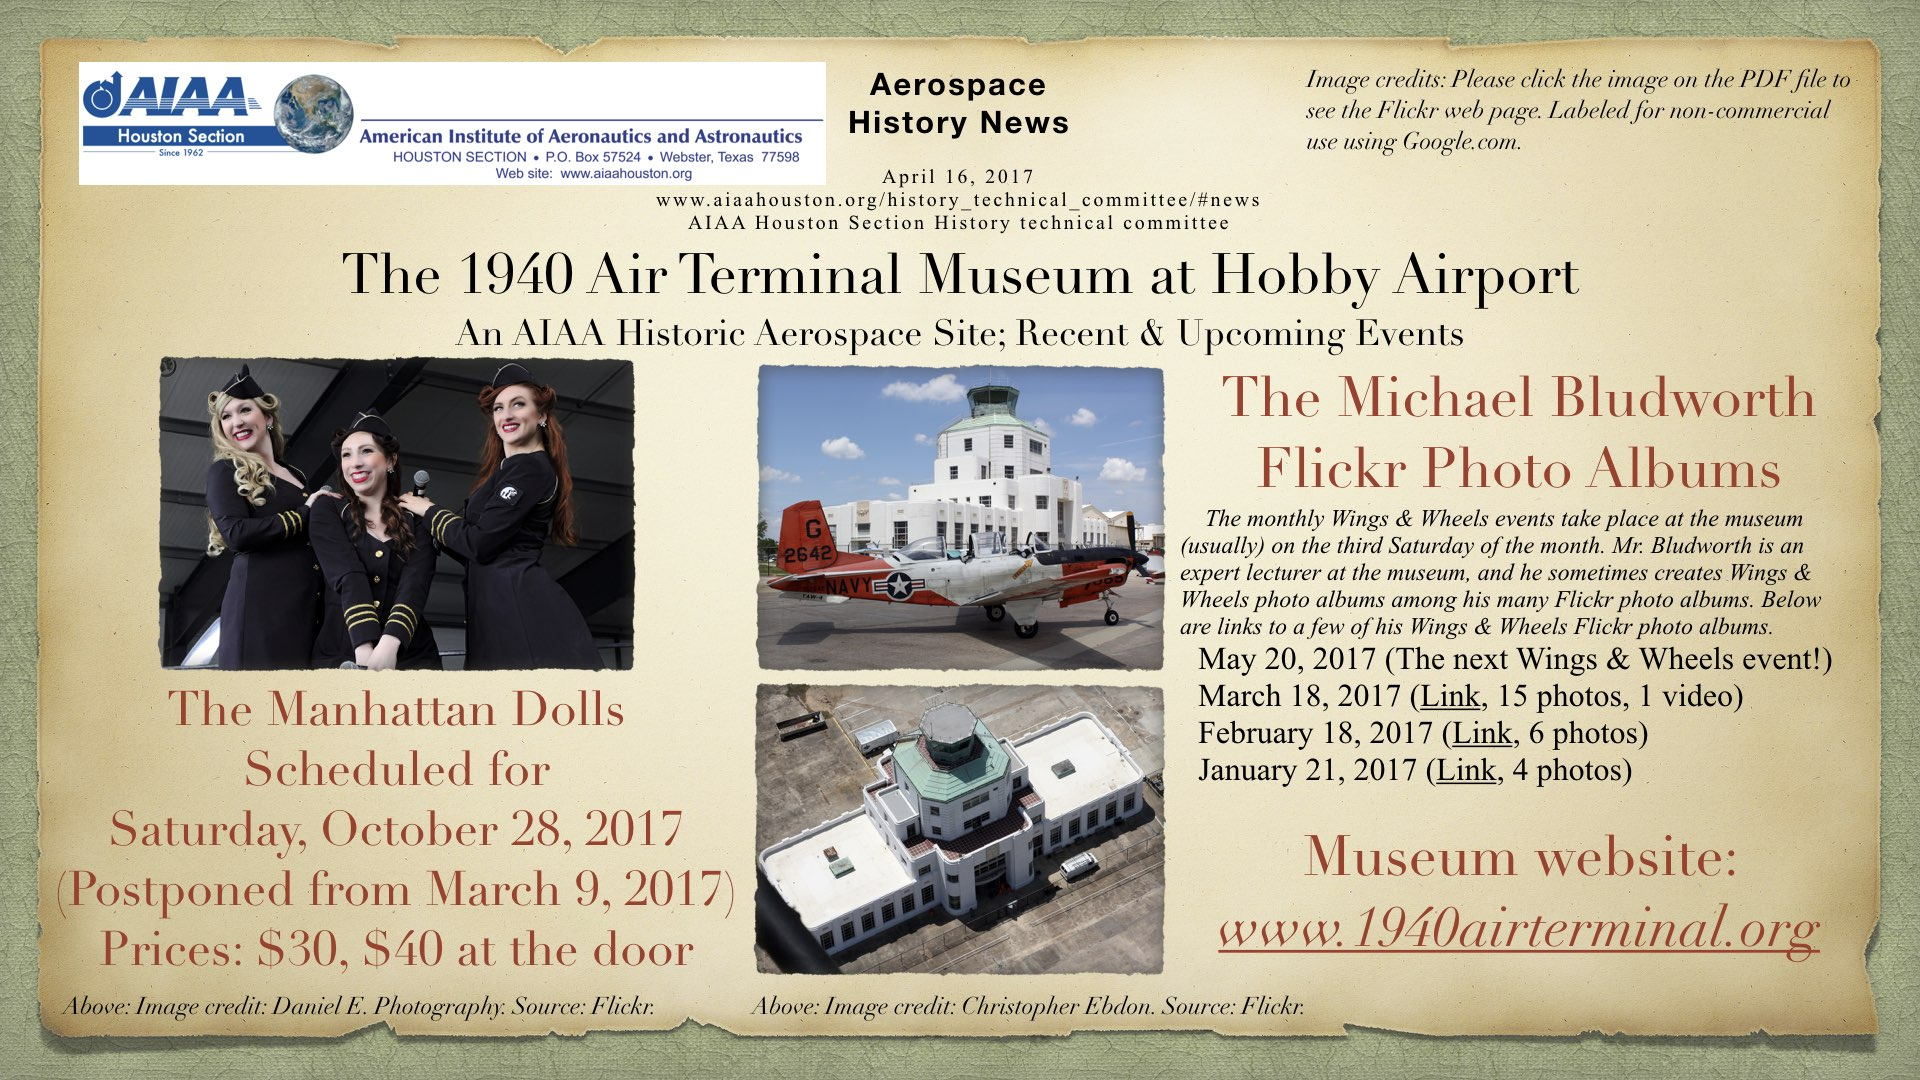 Above: The 1940 Air Terminal Museum at Hobby Airport; An AIAA Historic Aerospace Site; Recent & Upcoming Events. (Click to zoom.)